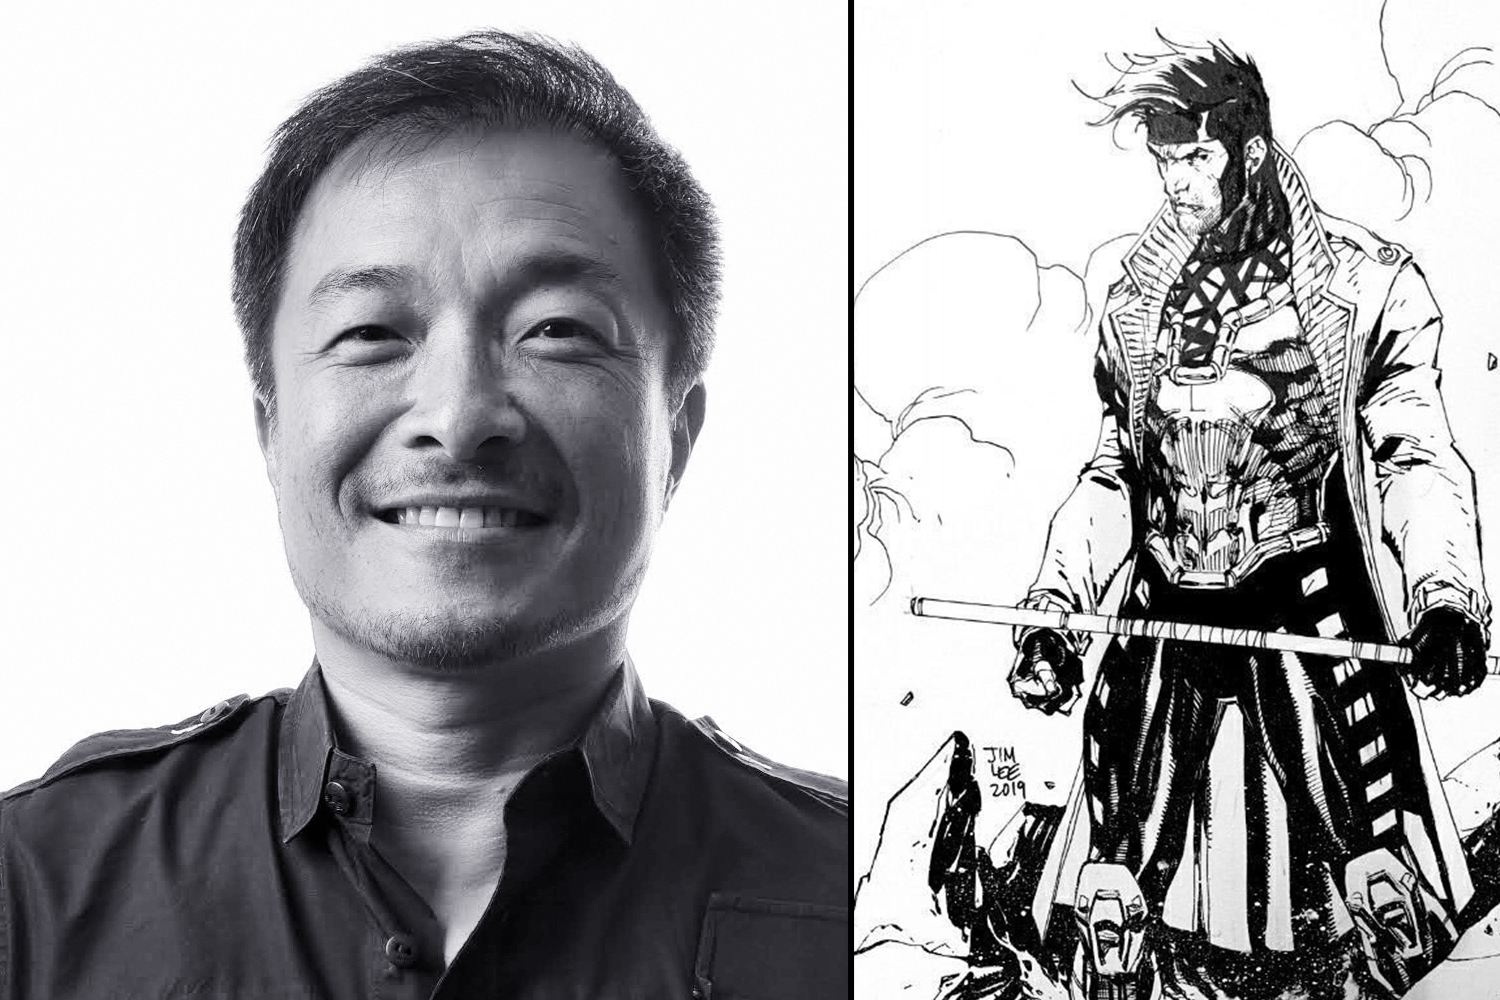 C2E2 day two: Jim Lee Spotlight panel - Talking his own origin, Dan Didio's exit, and X-Men's Gambit